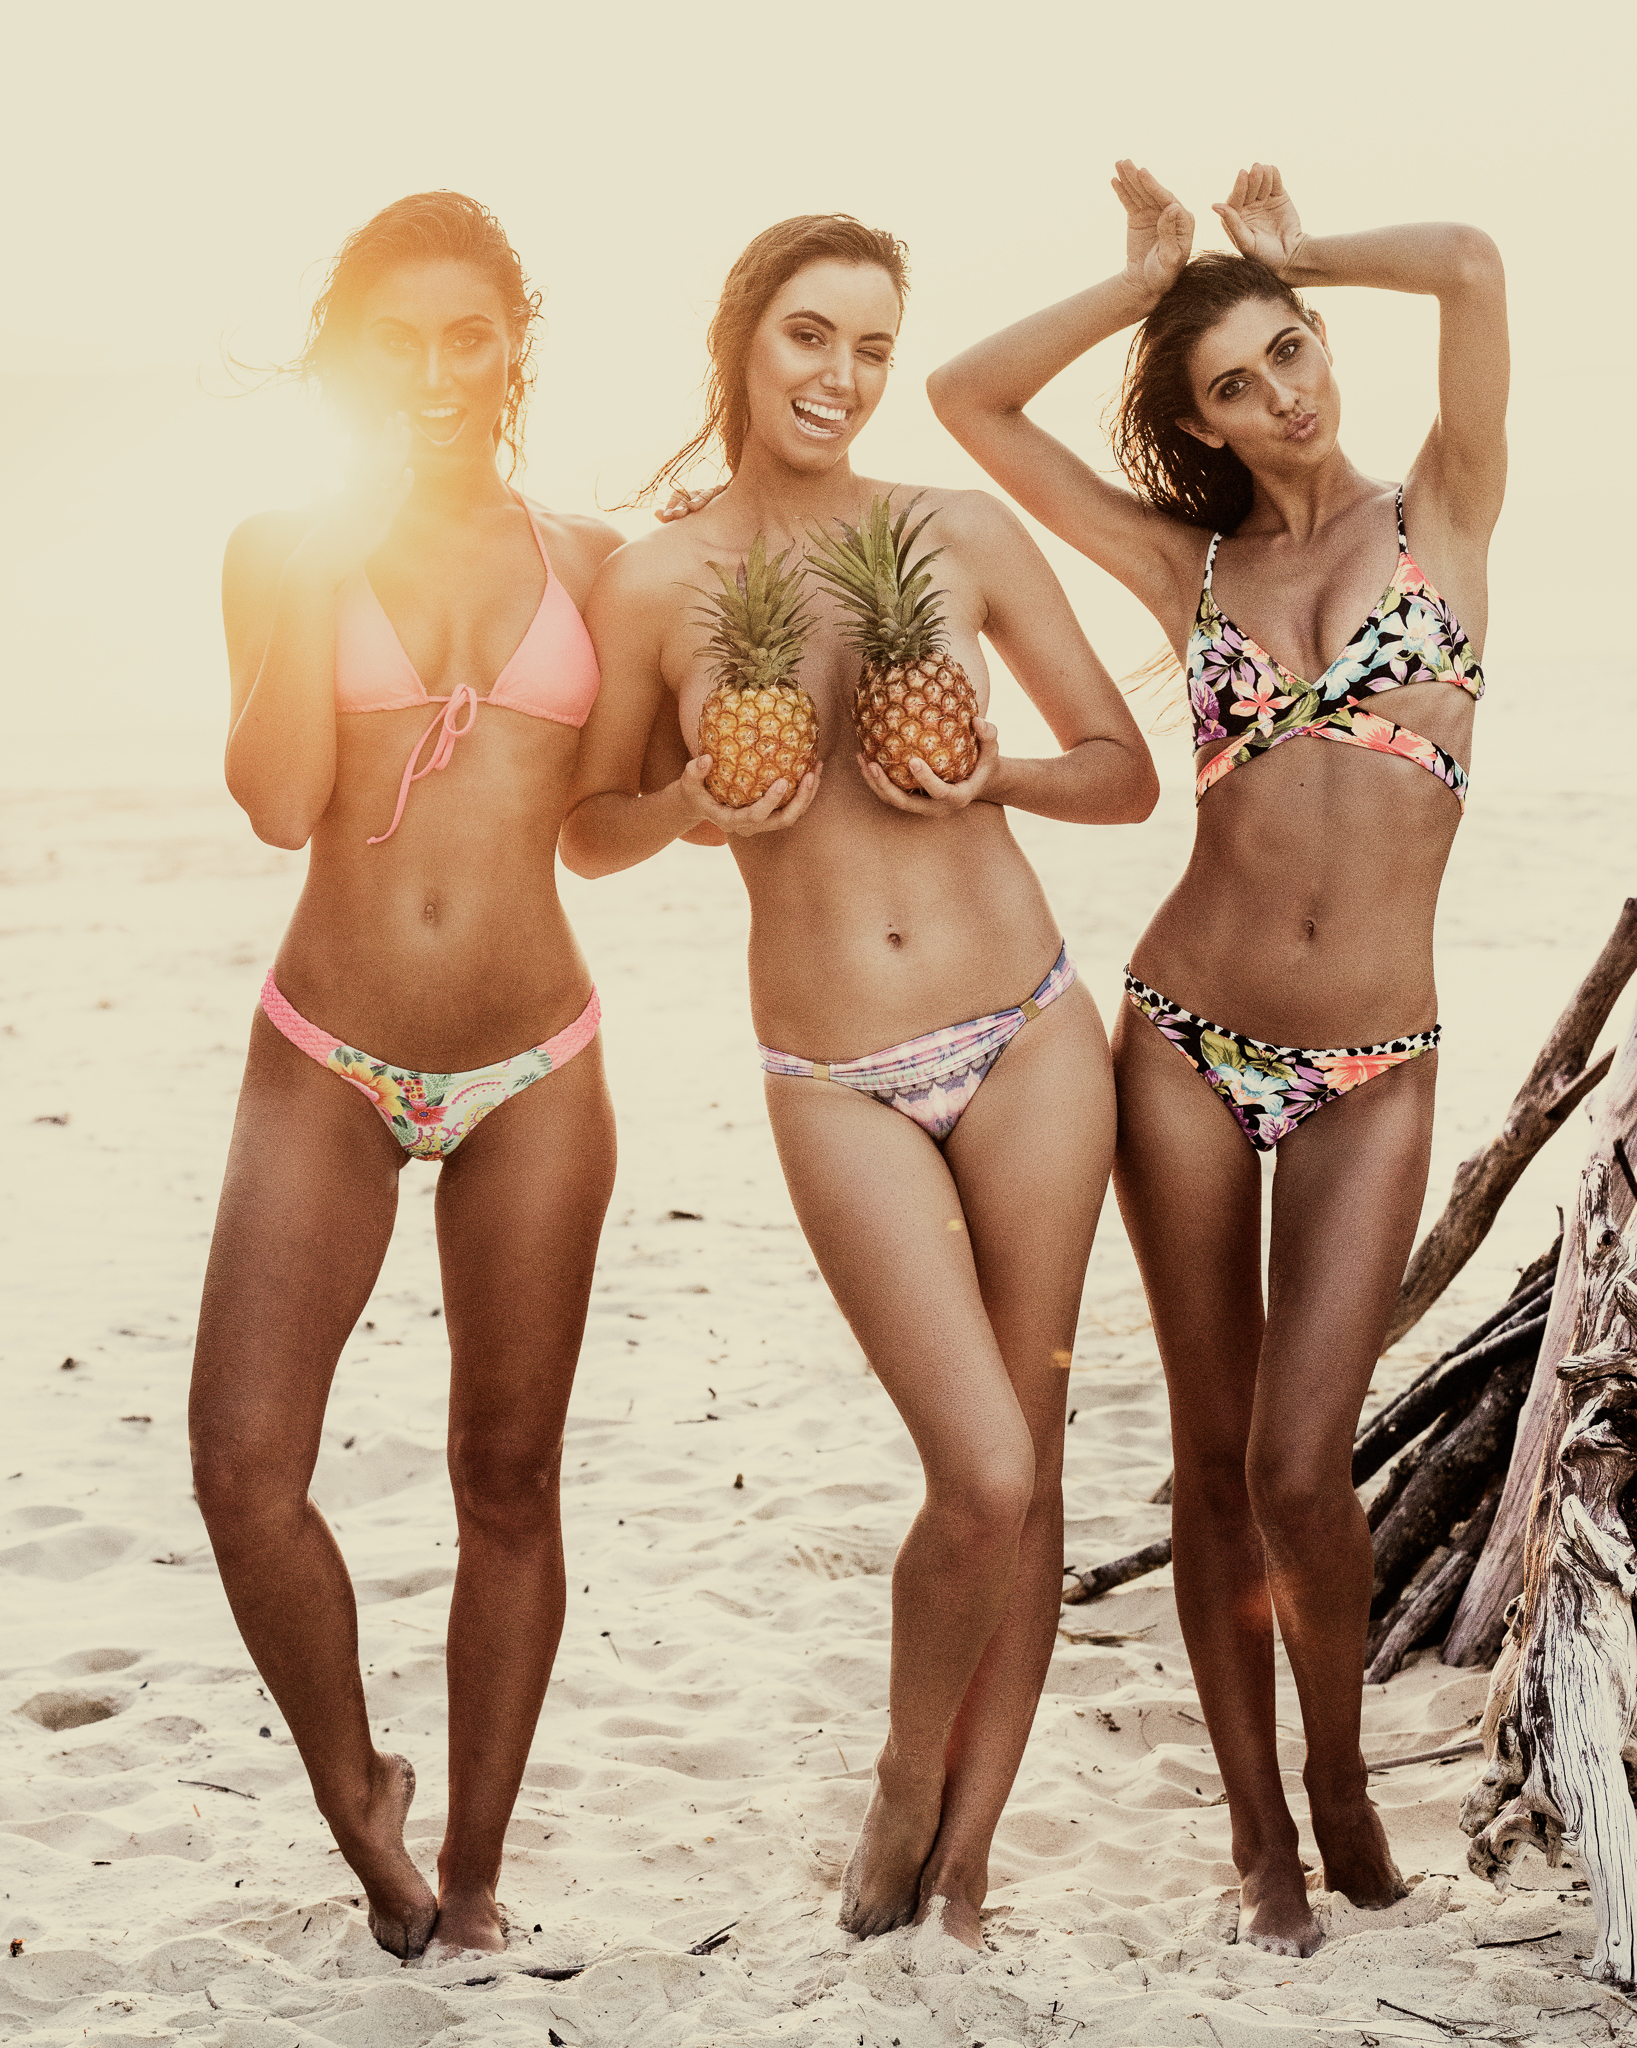 Postcards From Paradise. - What's to say when you come across an abandoned tee-pee on an Island beach, at sunset, with three models and a couple of good looking pineapples. Steph Rayner, Bridget McMahon, Lori McKenzie via Vivien's Models; Photographs by Dave Blake, Hair-Makeup Jessica Cagney. Location: North Stradbroke Island, Queensland Australia.